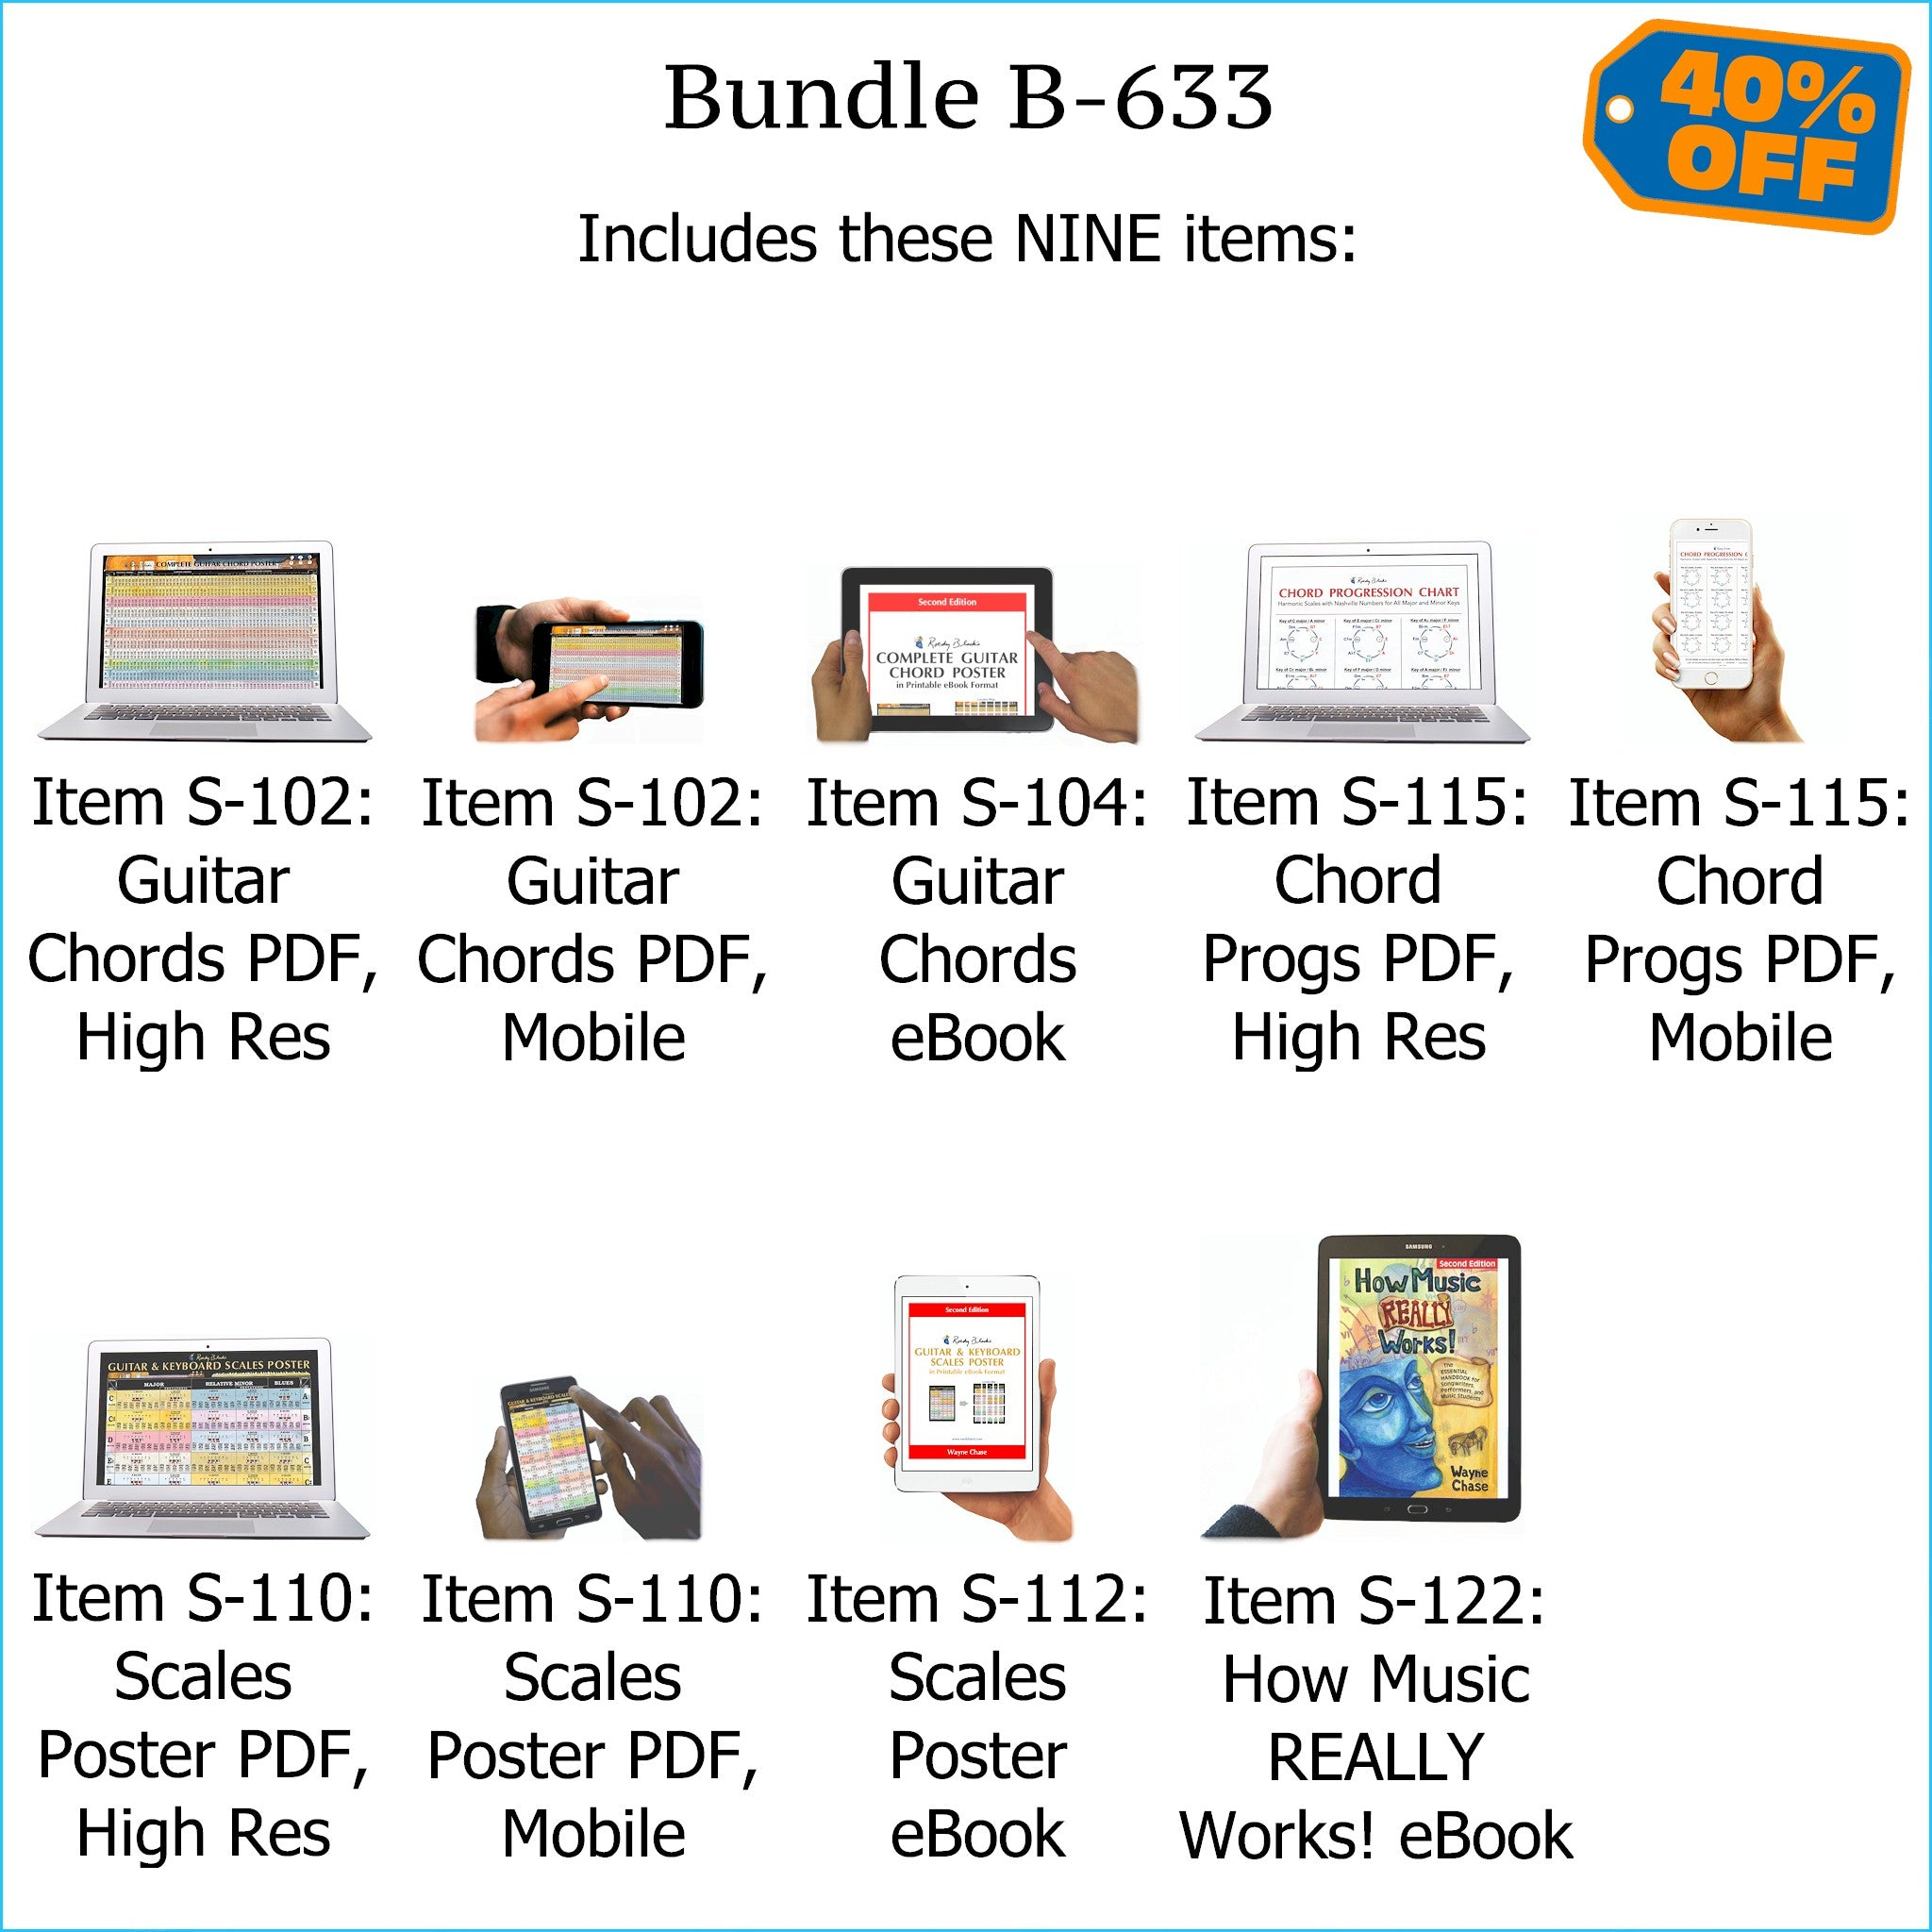 Bundle B-633: How Music REALLY Works! E-Book + Guitar Chords, Chord Progressions, Scales - E-Posters and Printable E-Books. FREE Download Protection.